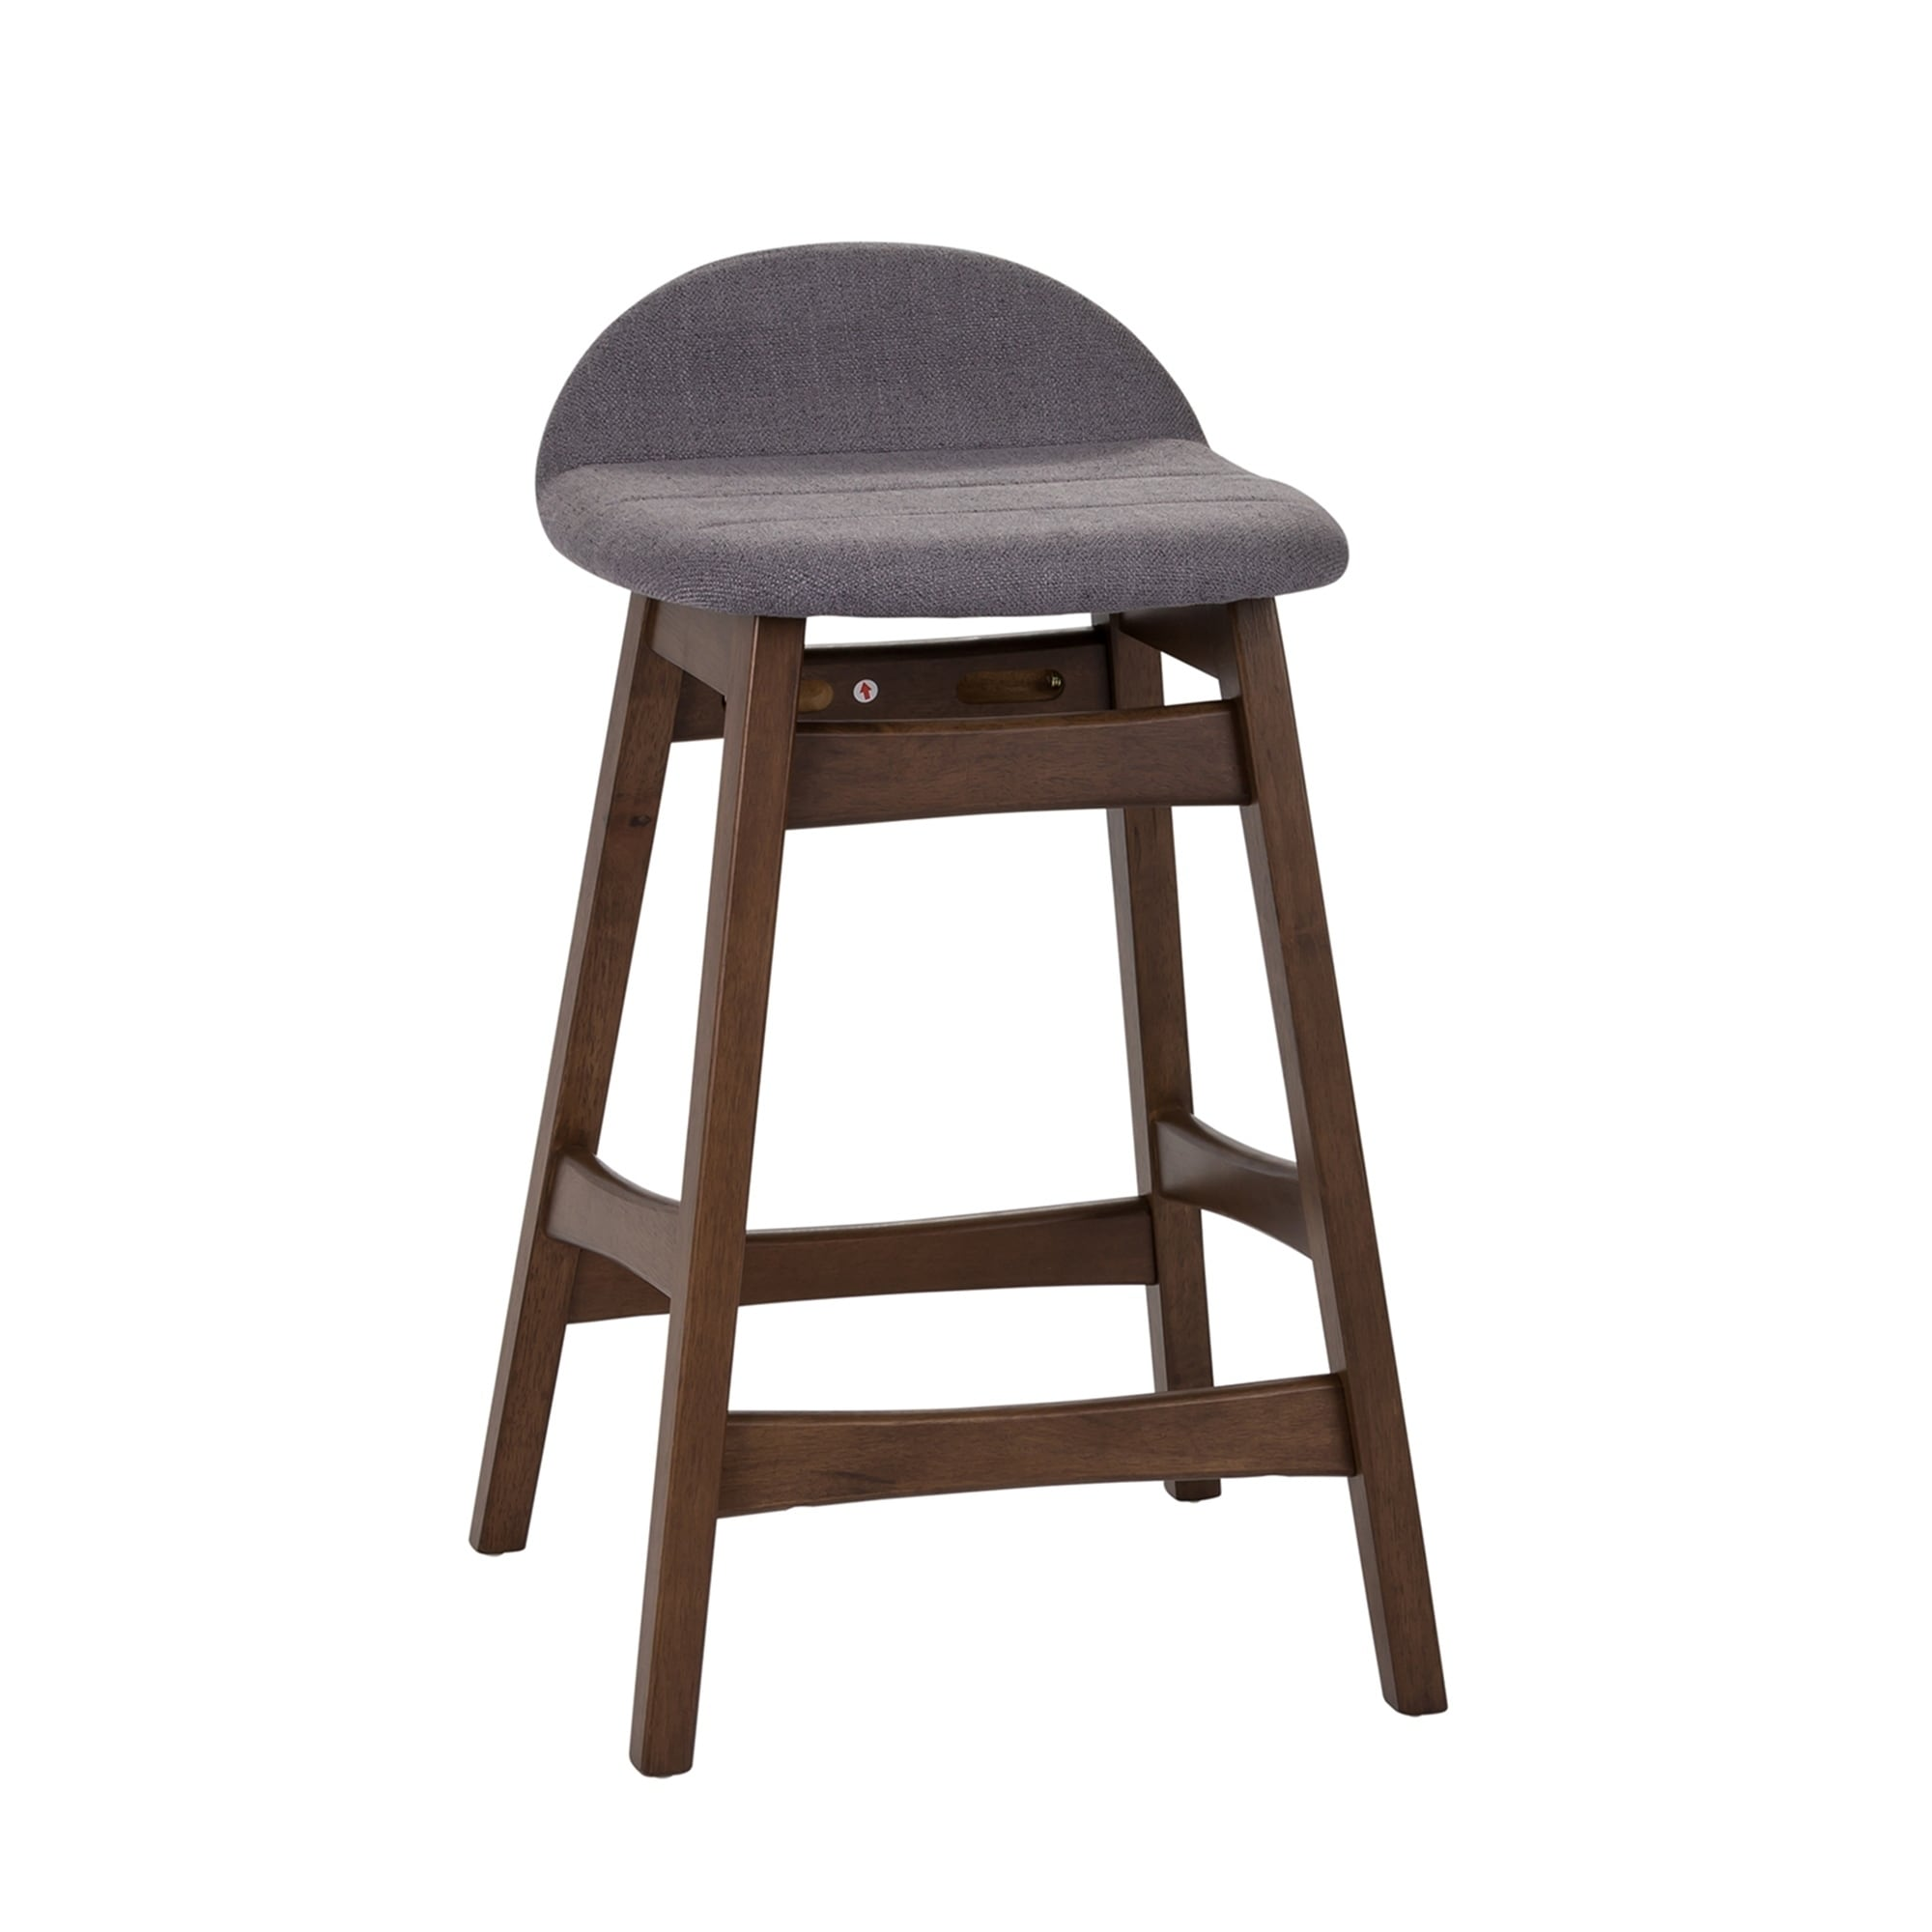 Fantastic Space Savers Modern Upholstered 24 Inch Counter Height Barstool Set Of 2 Machost Co Dining Chair Design Ideas Machostcouk